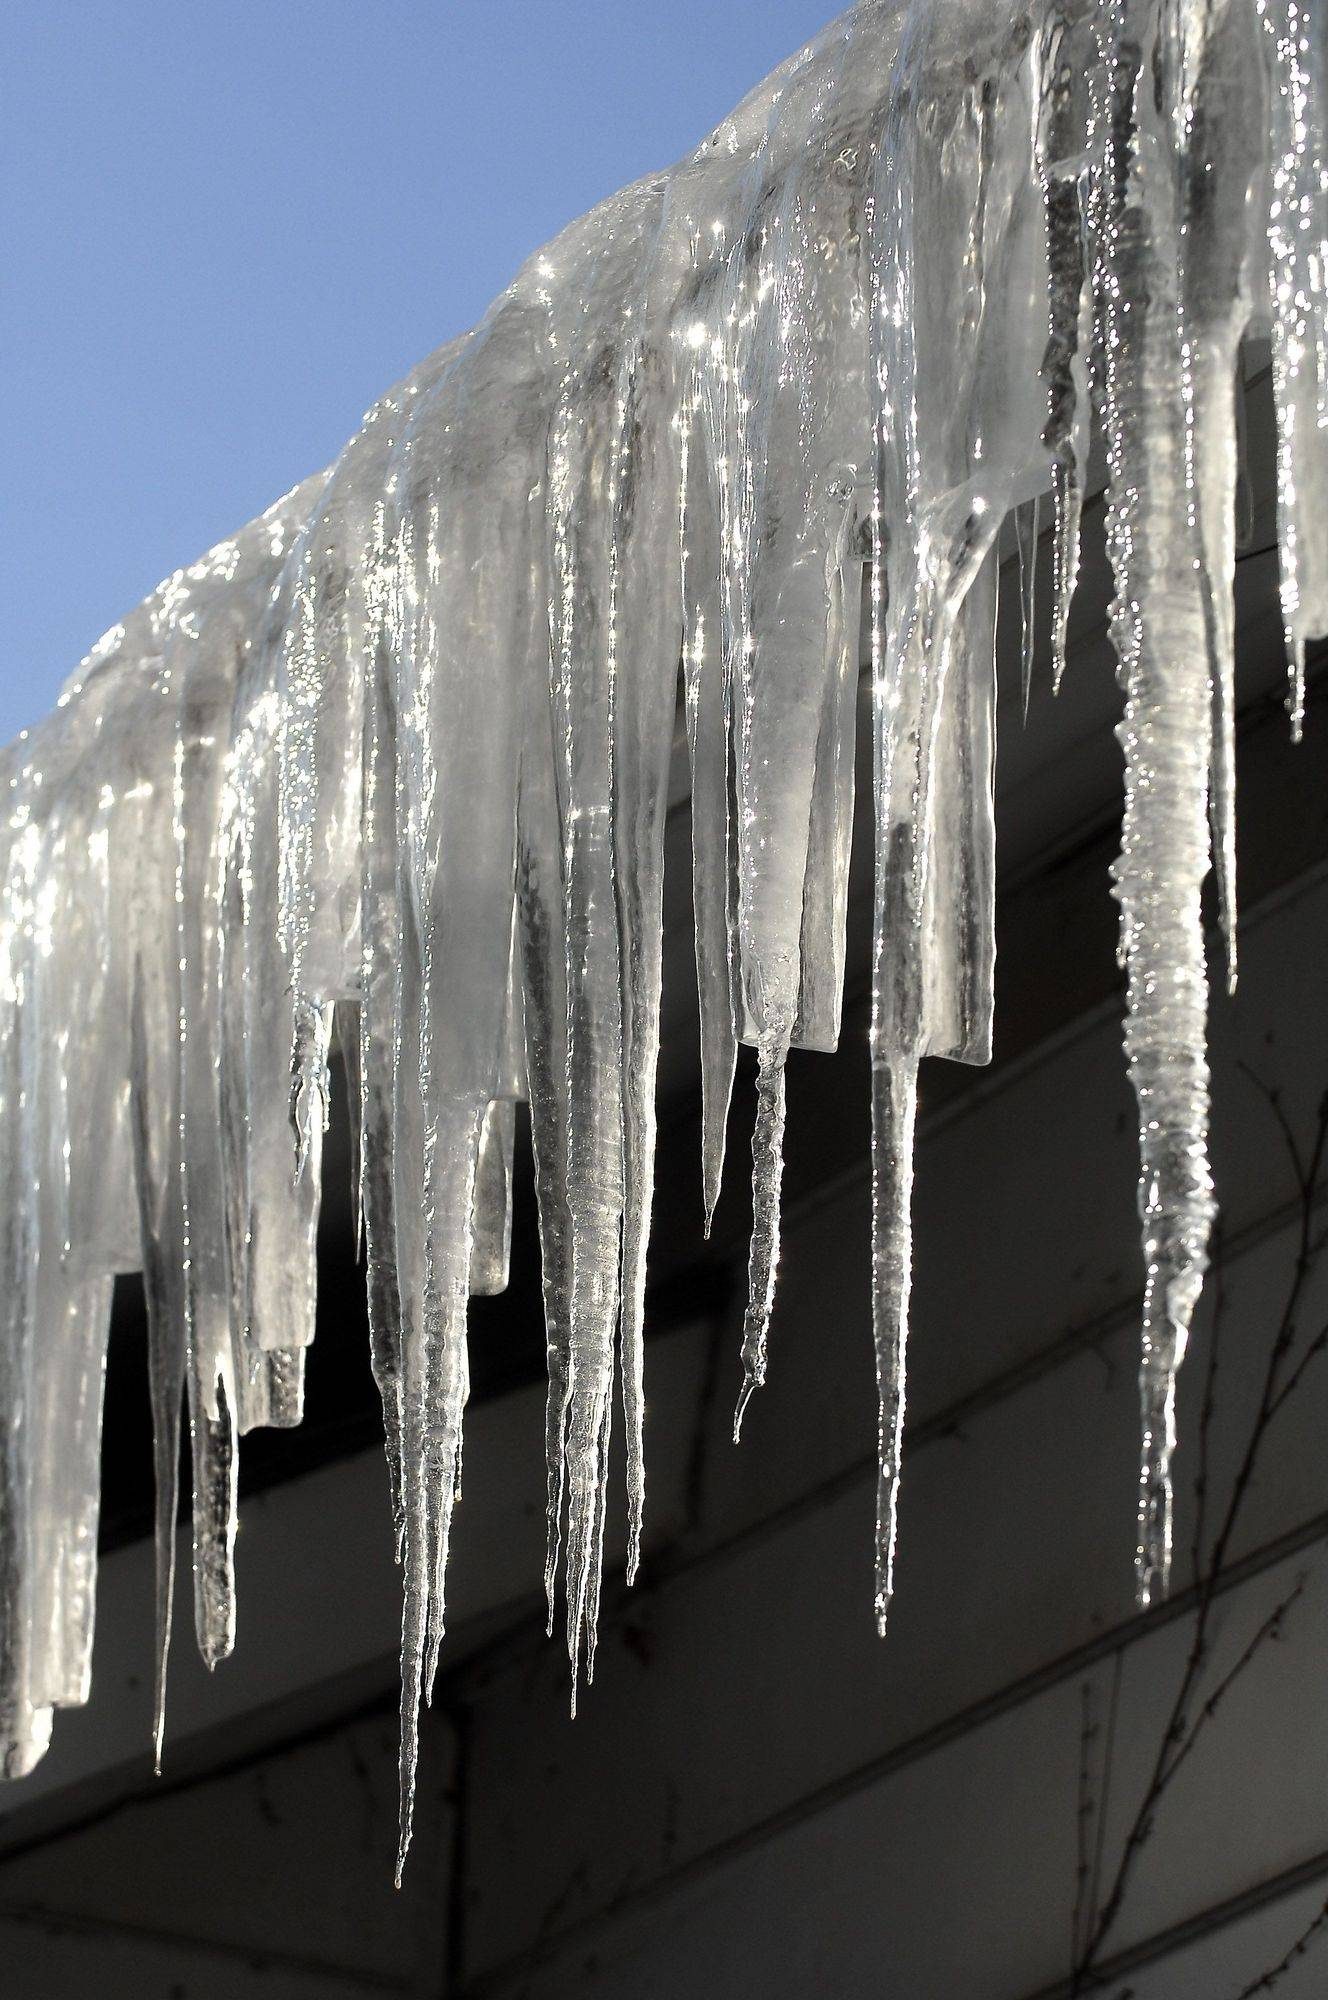 Breaking icicles can reduce the weight on gutters but ice damming will still occur.